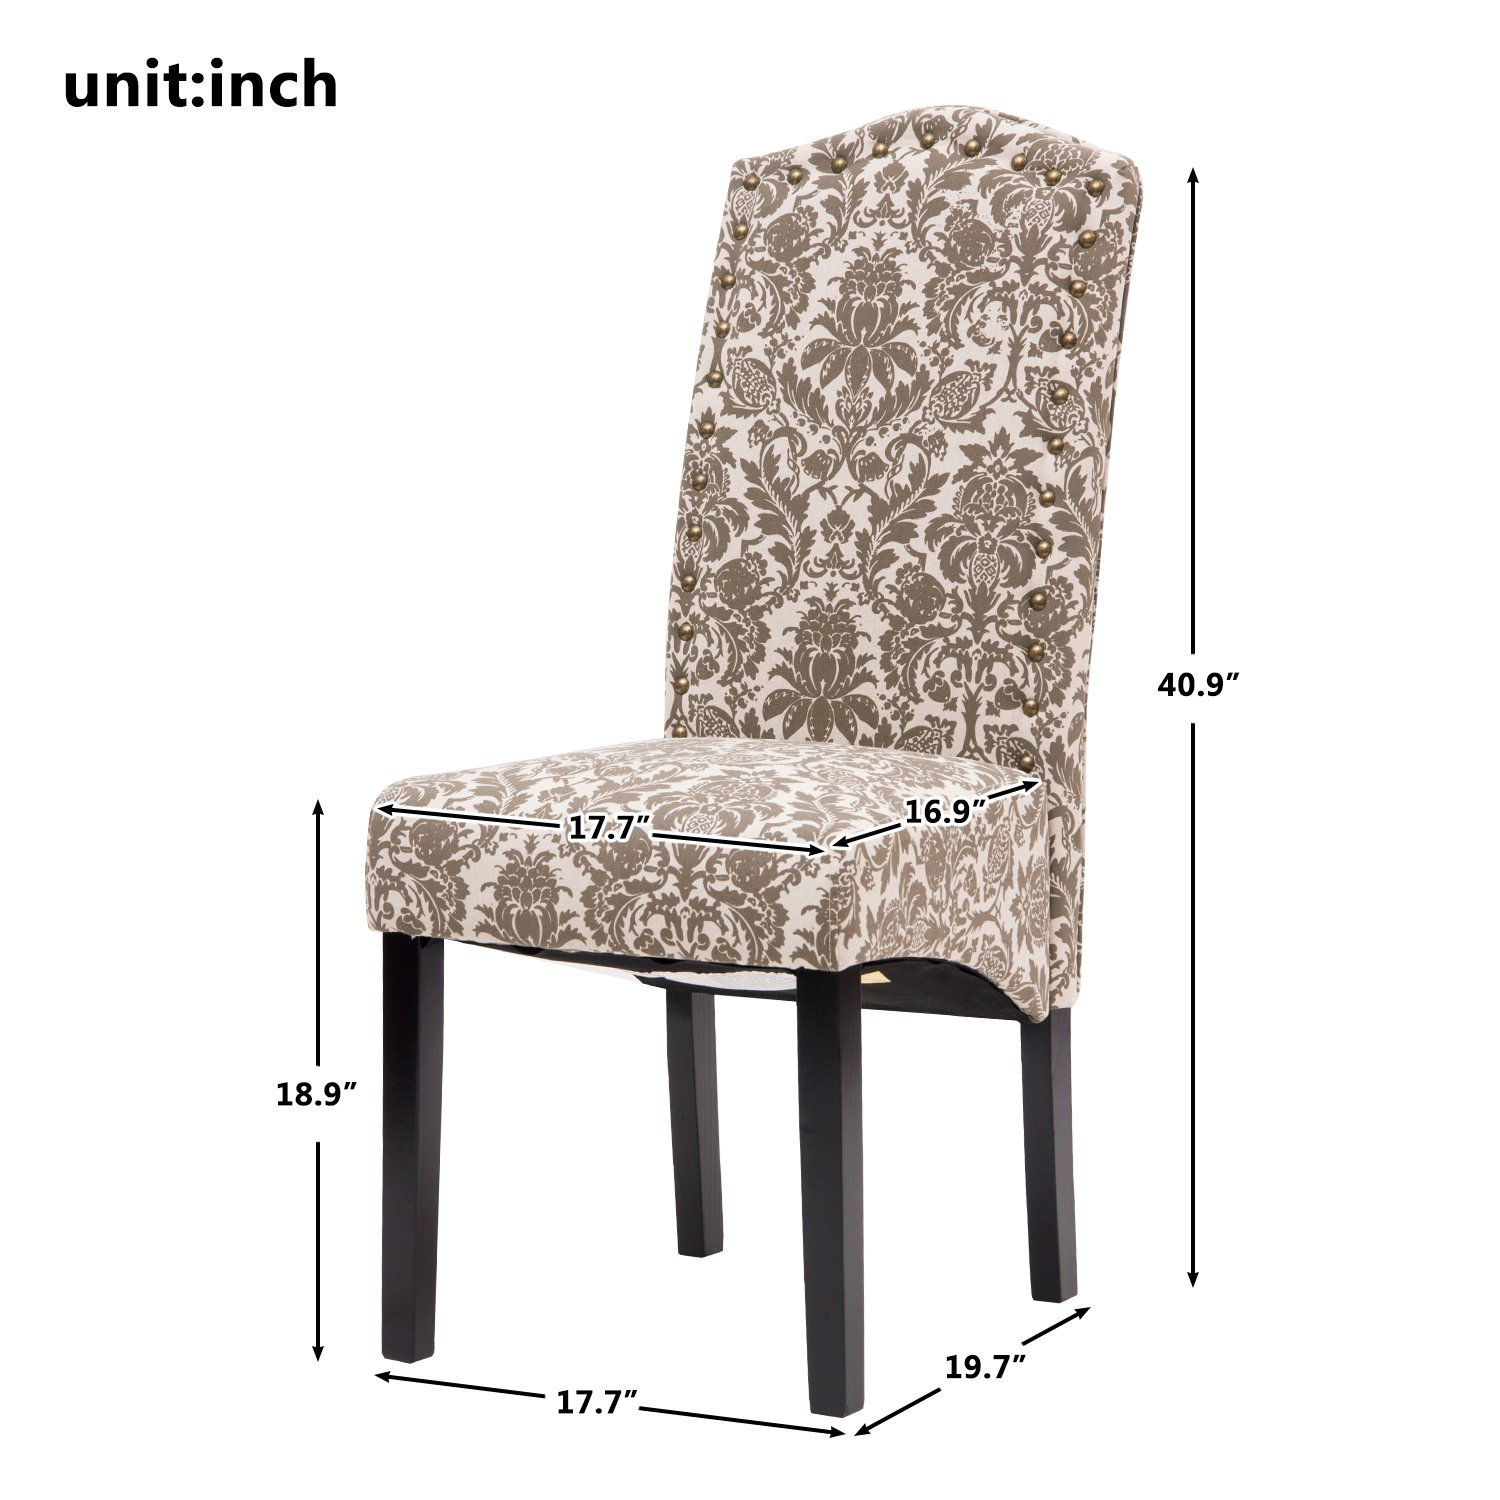 Merax PP036312EAA Ding Chair Fabric Accent Dining Room Solid Wood Legs, 18'' W x 22'' D x 41'' H, floarl by Merax (Image #3)